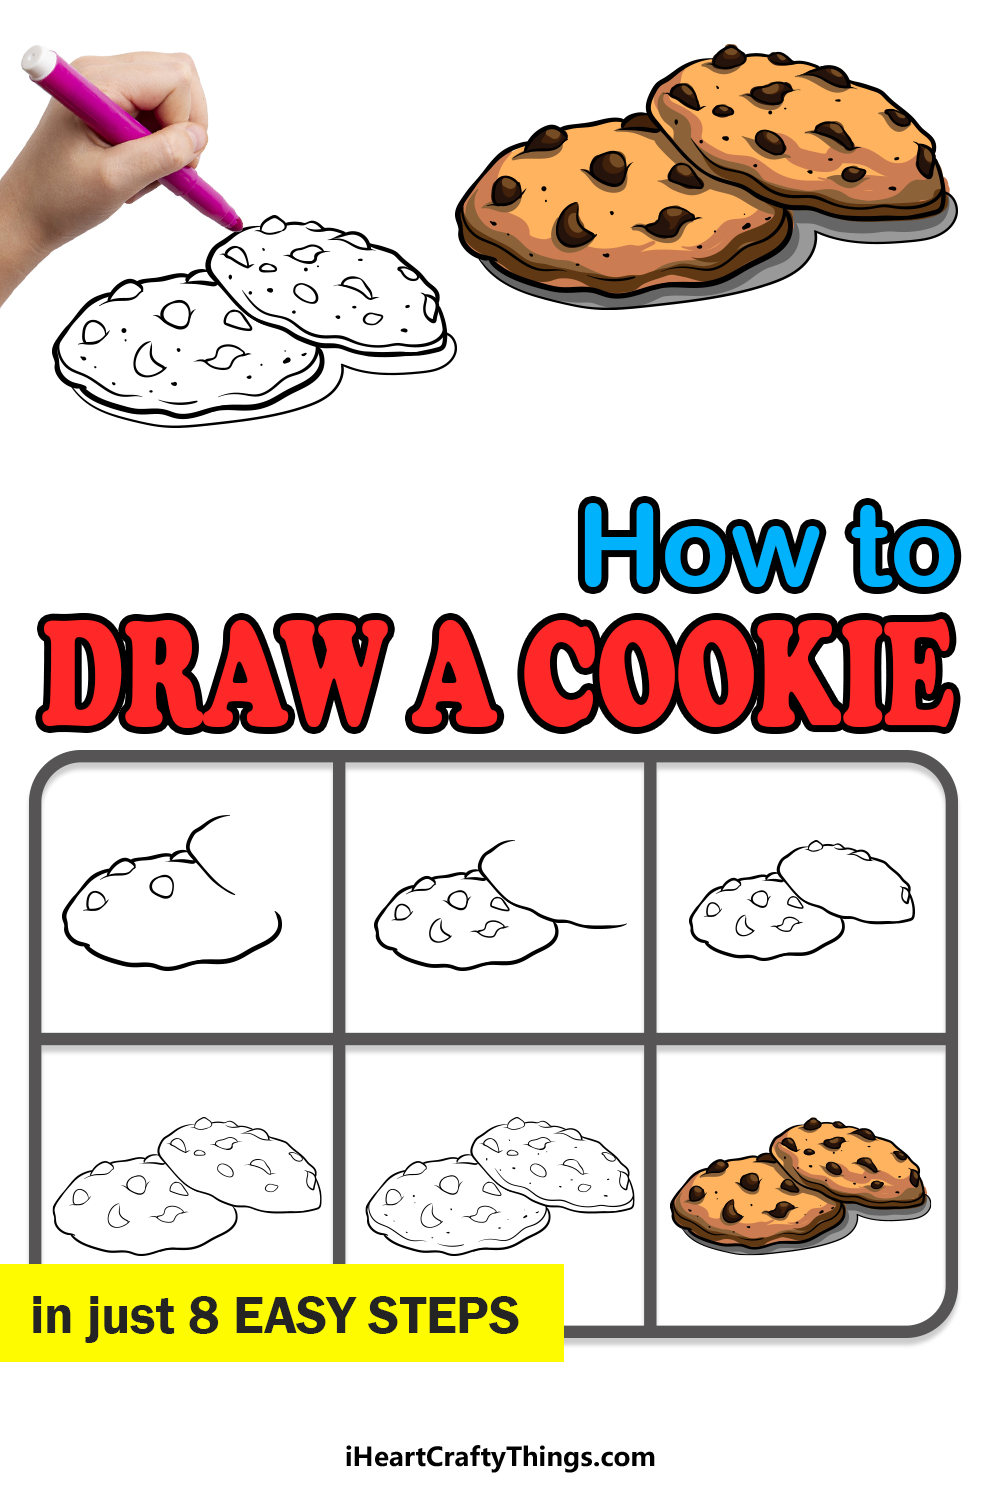 how to draw a cookie in 8 easy steps